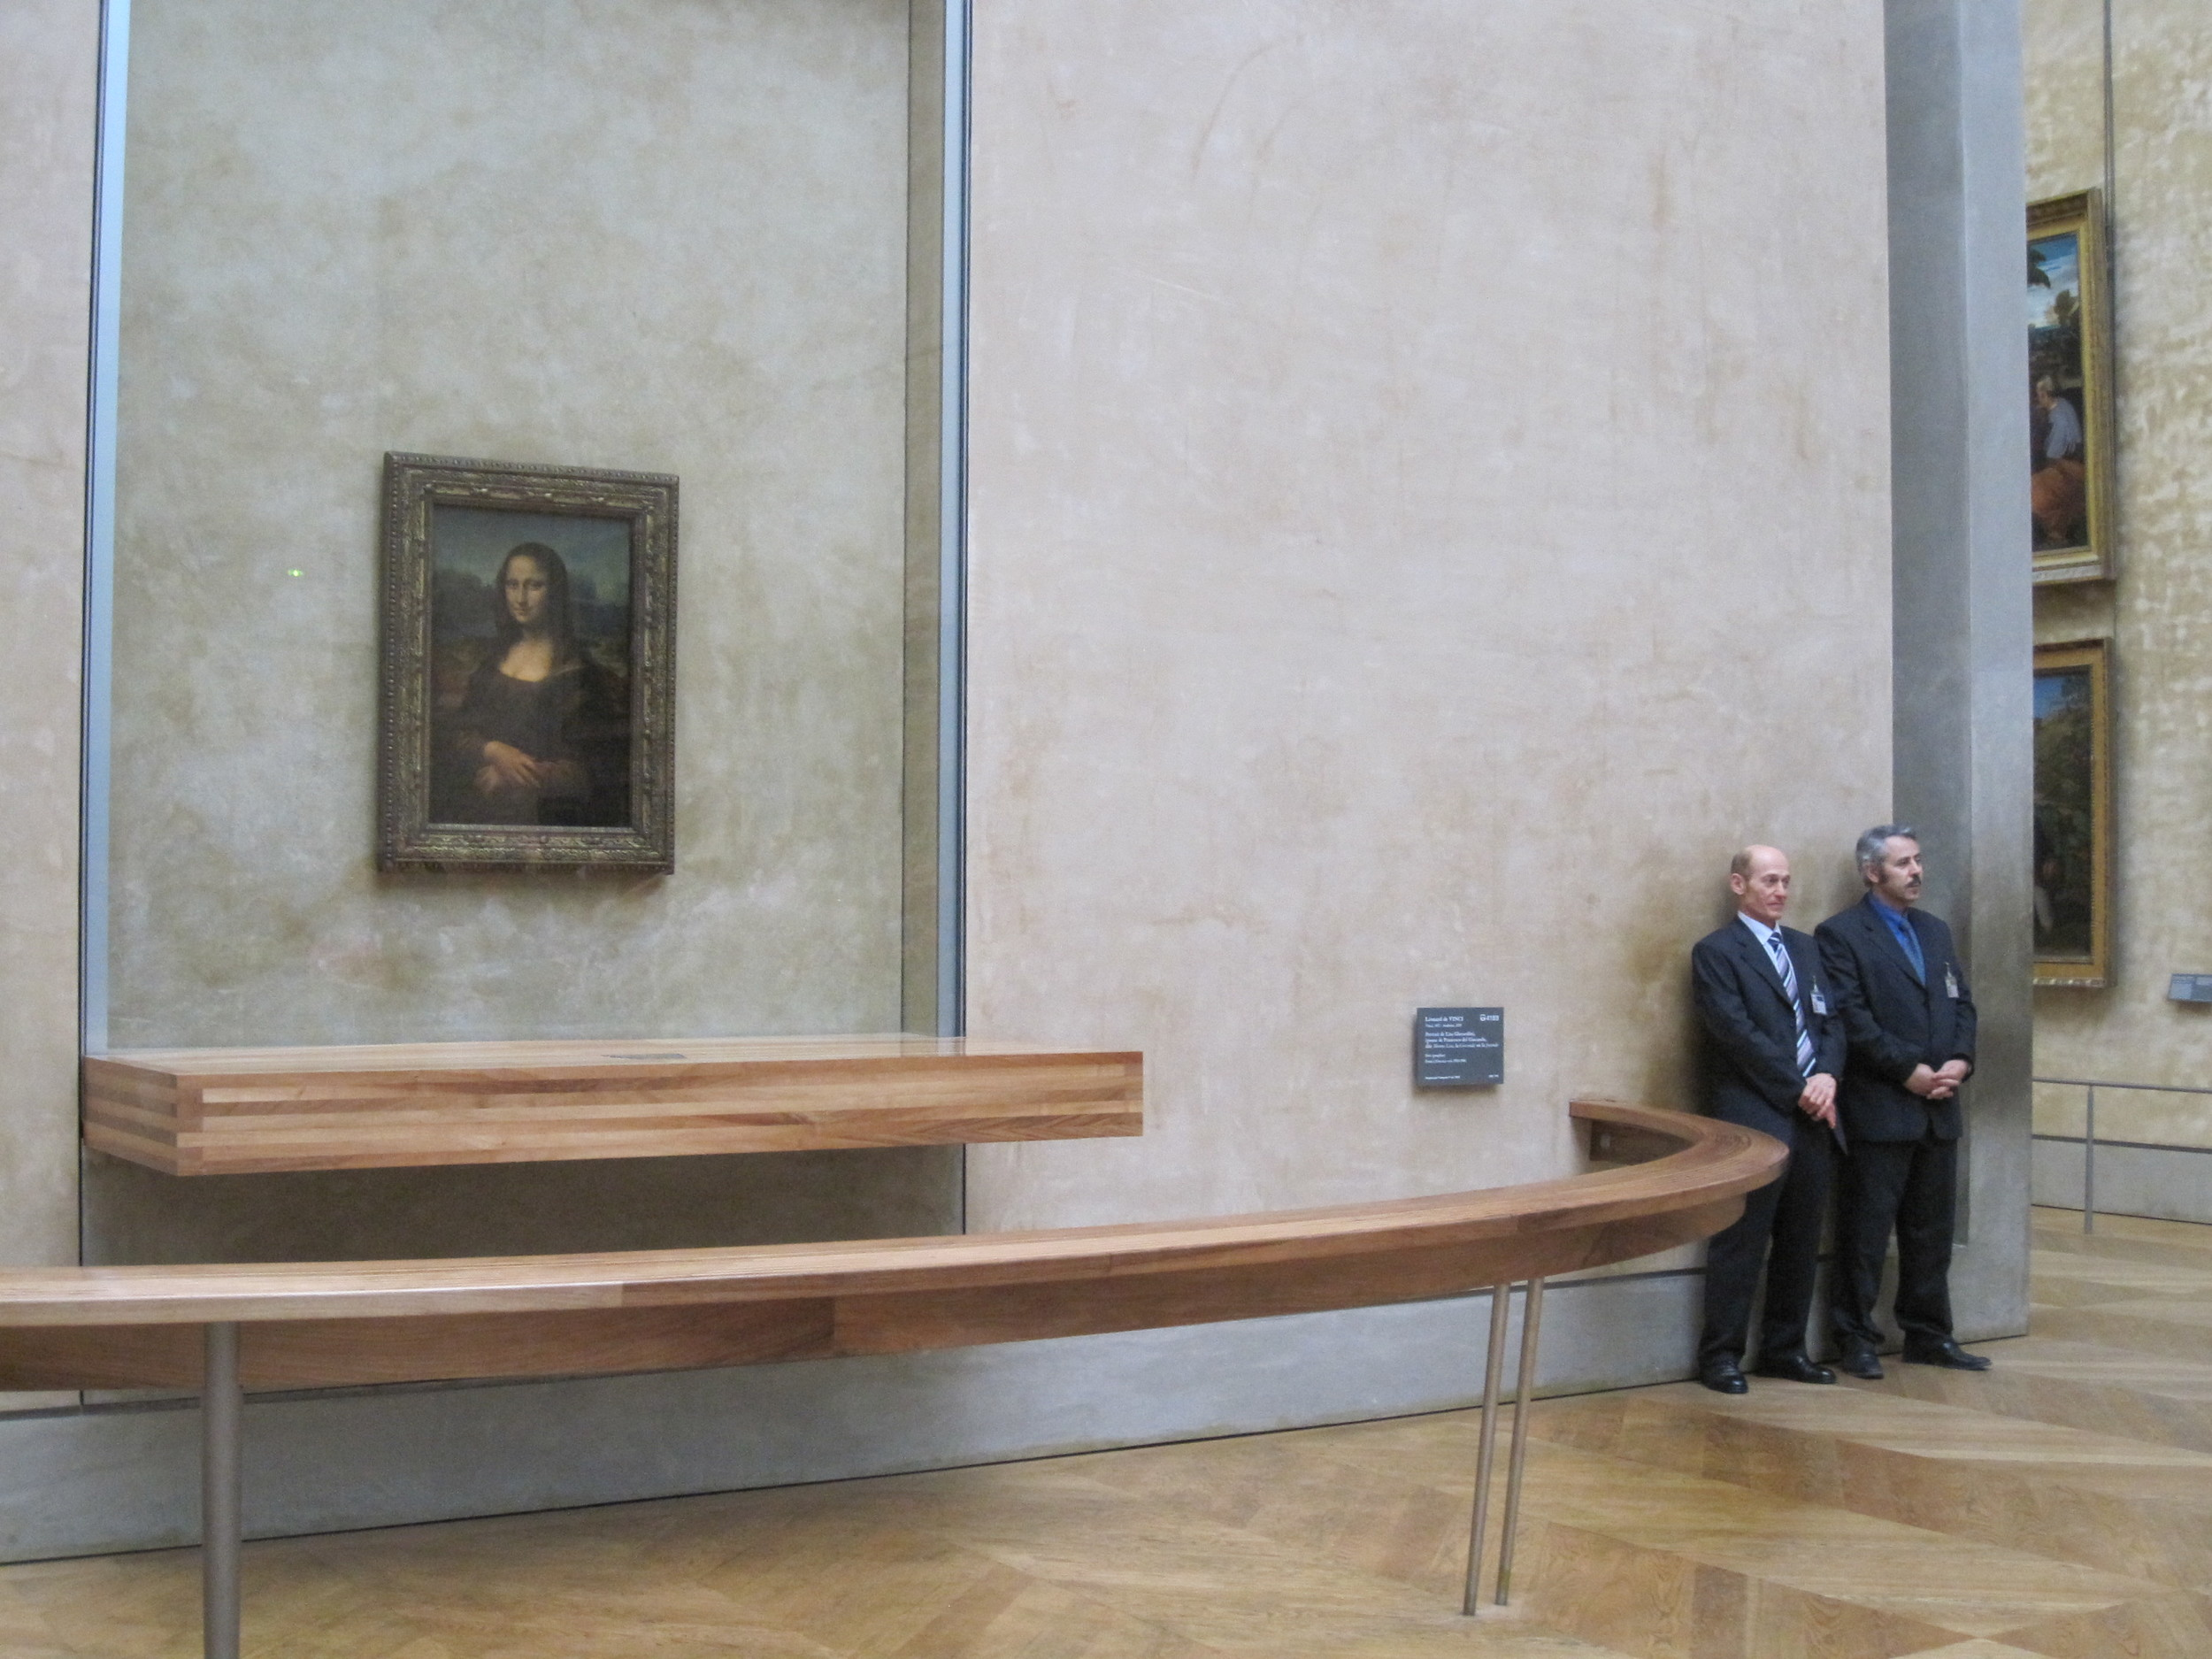 I've seen her four times, and with each visit the security and crowds were more outrageous. The last time we visited the Louvre, I didn't even bother trying to elbow my way into the room.